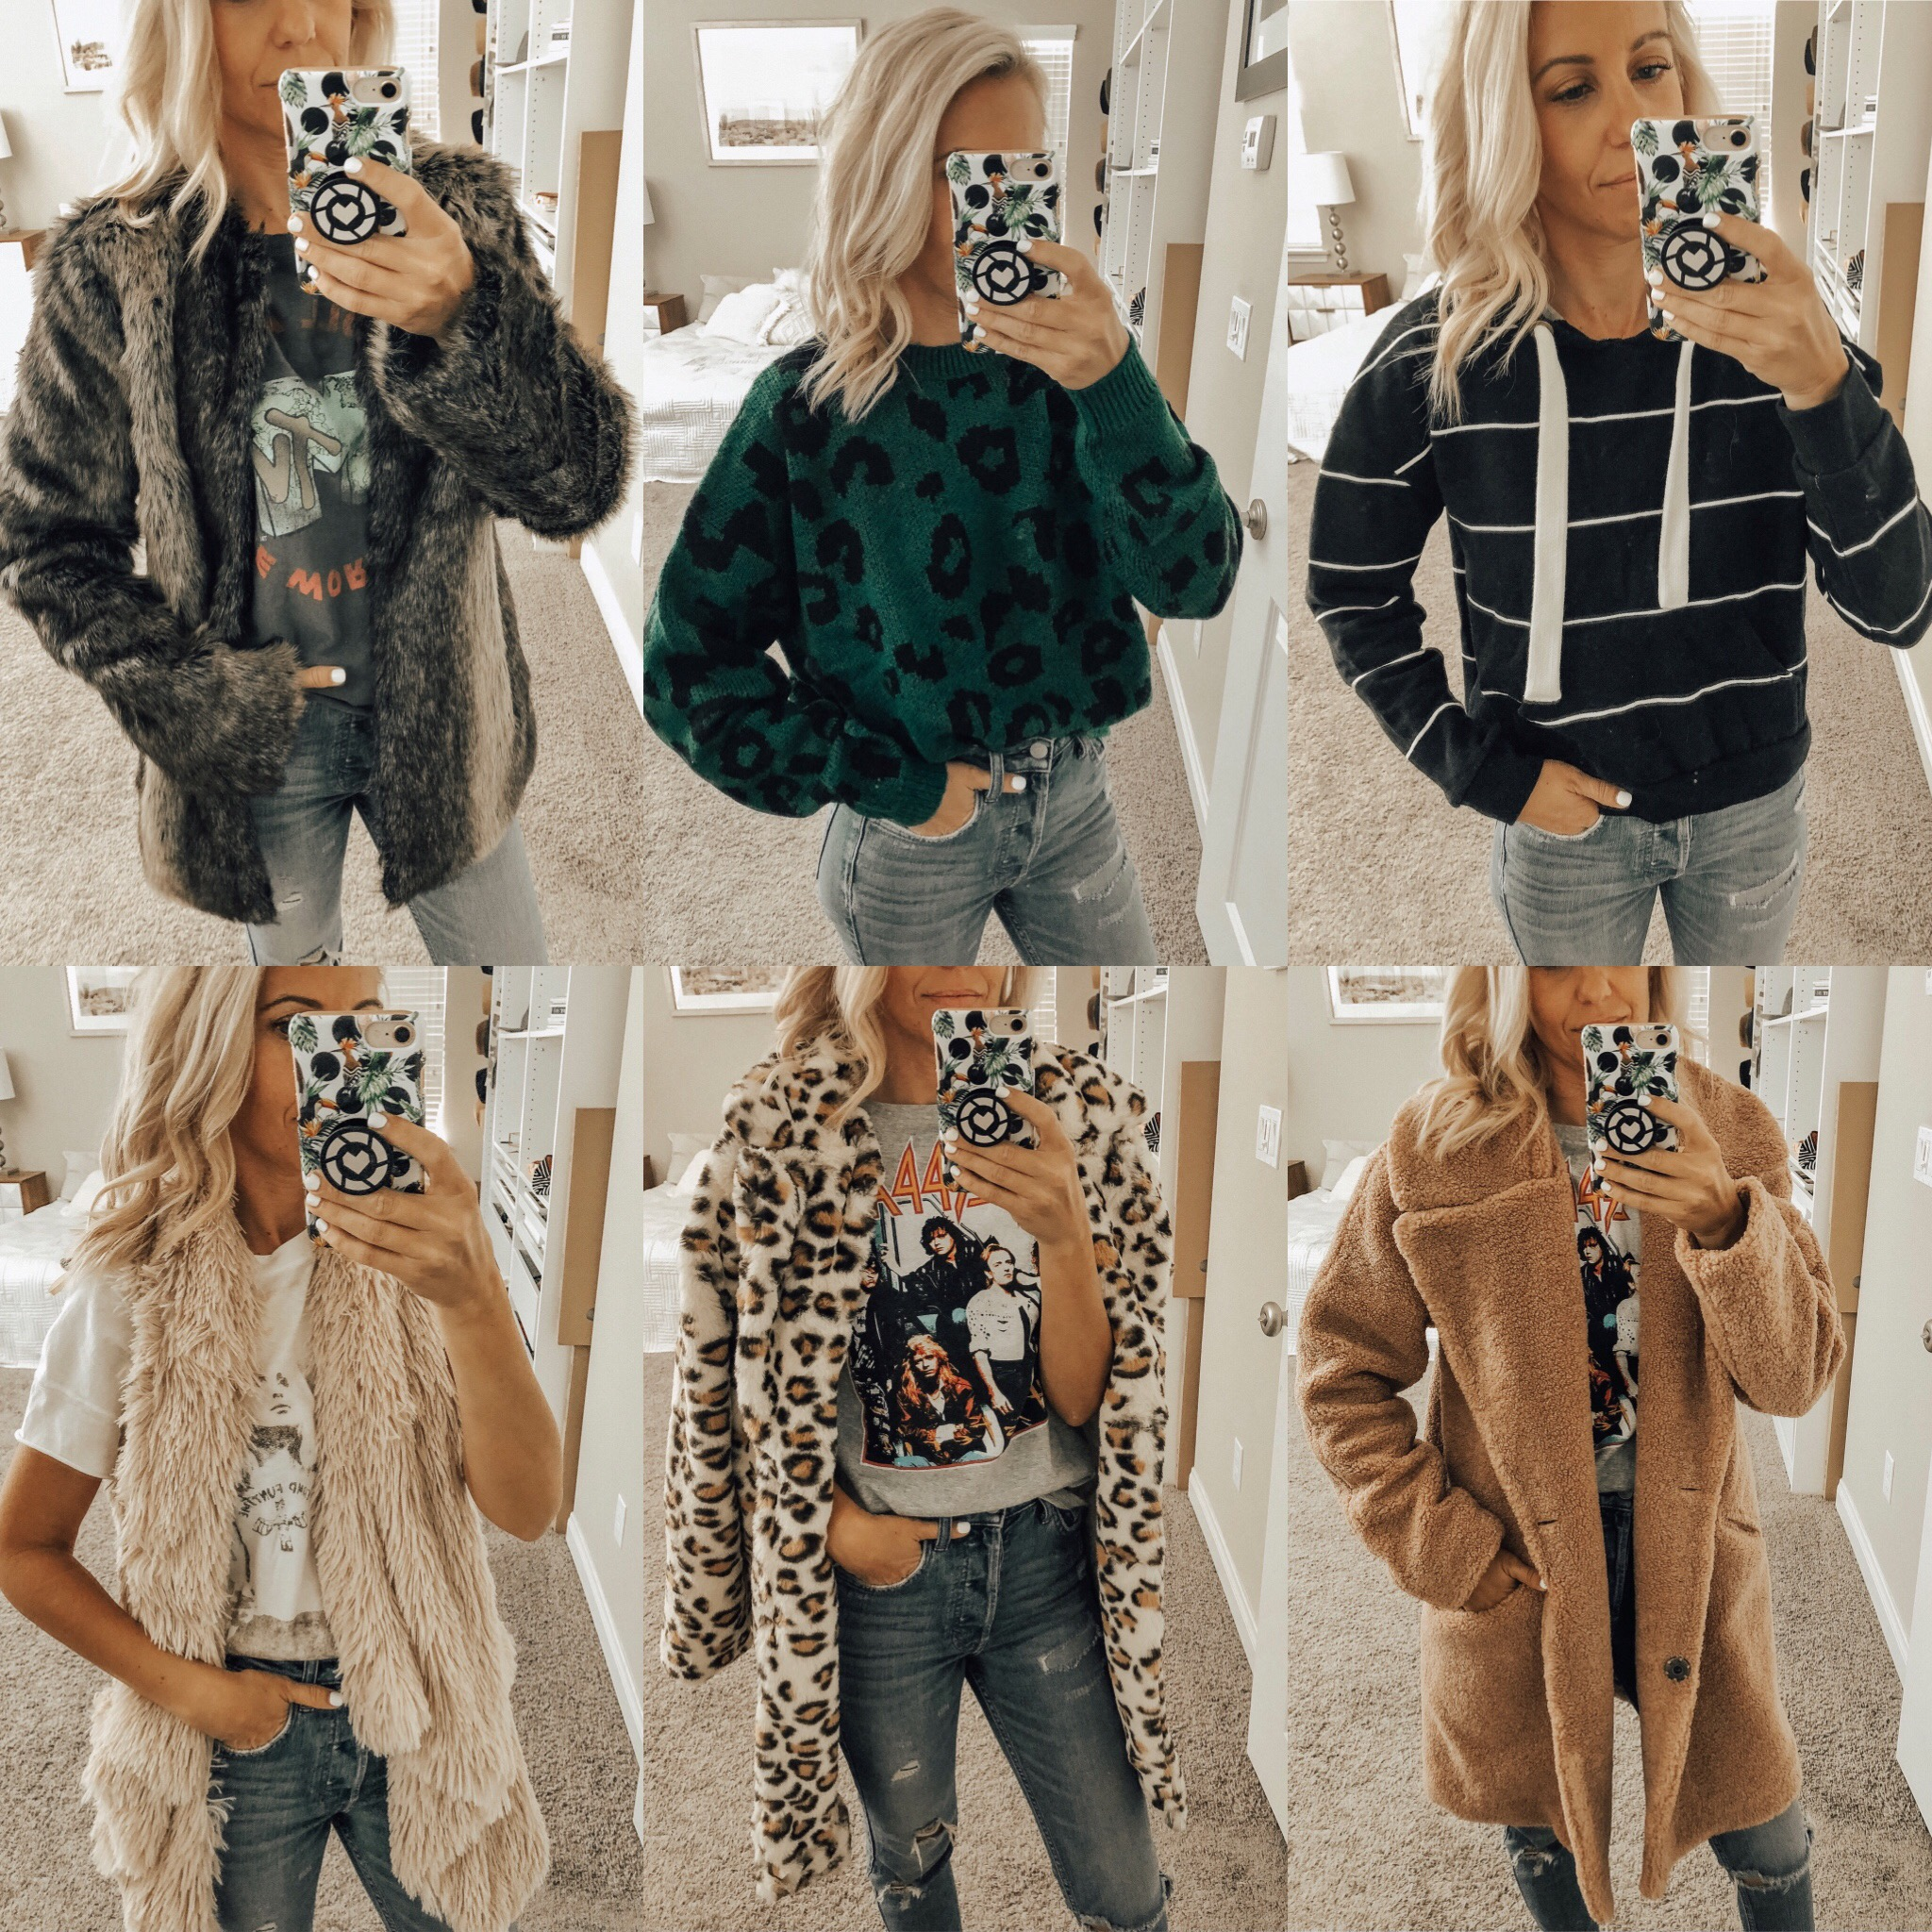 NORDSTROM RACK FINDS- Jaclyn De Leon Style + faux fur jacket + fall fashion + shopping tips + cozy casual outerwear + winter coats + try-on session + striped sweatshirt + soft faux fur vest + selfie + outfit inspiration + mom style + leopard